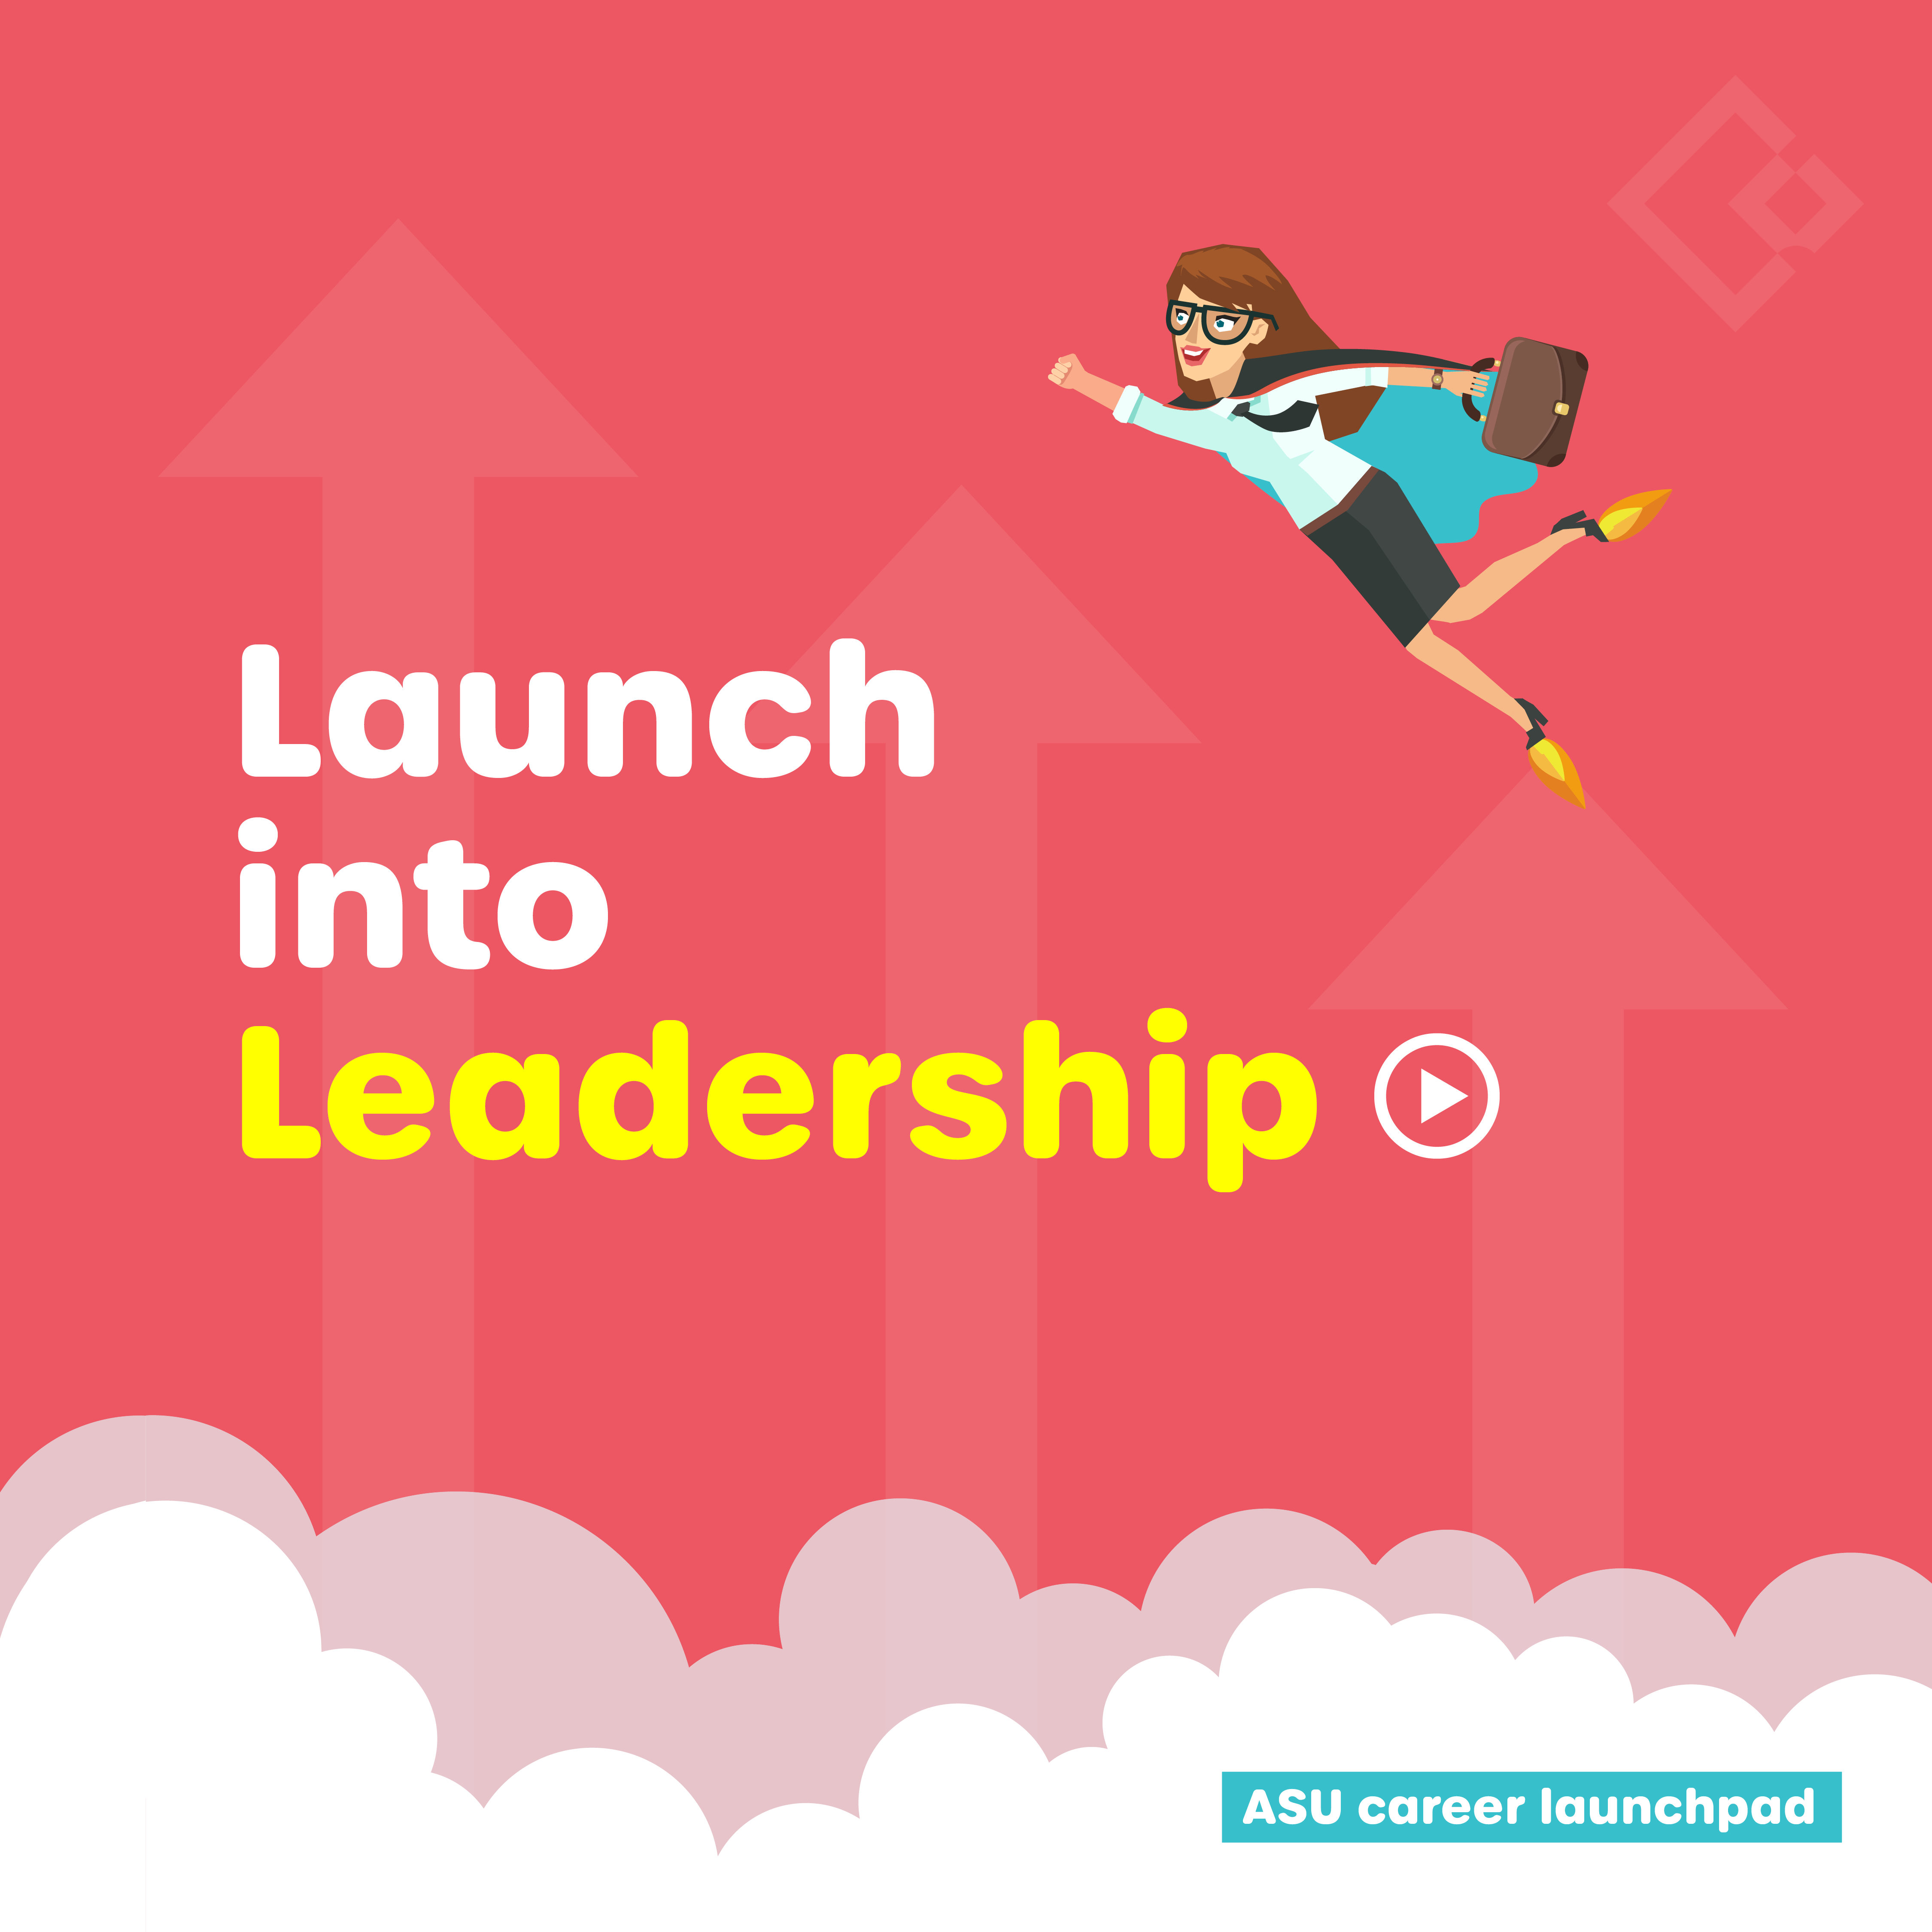 Launch into leadership